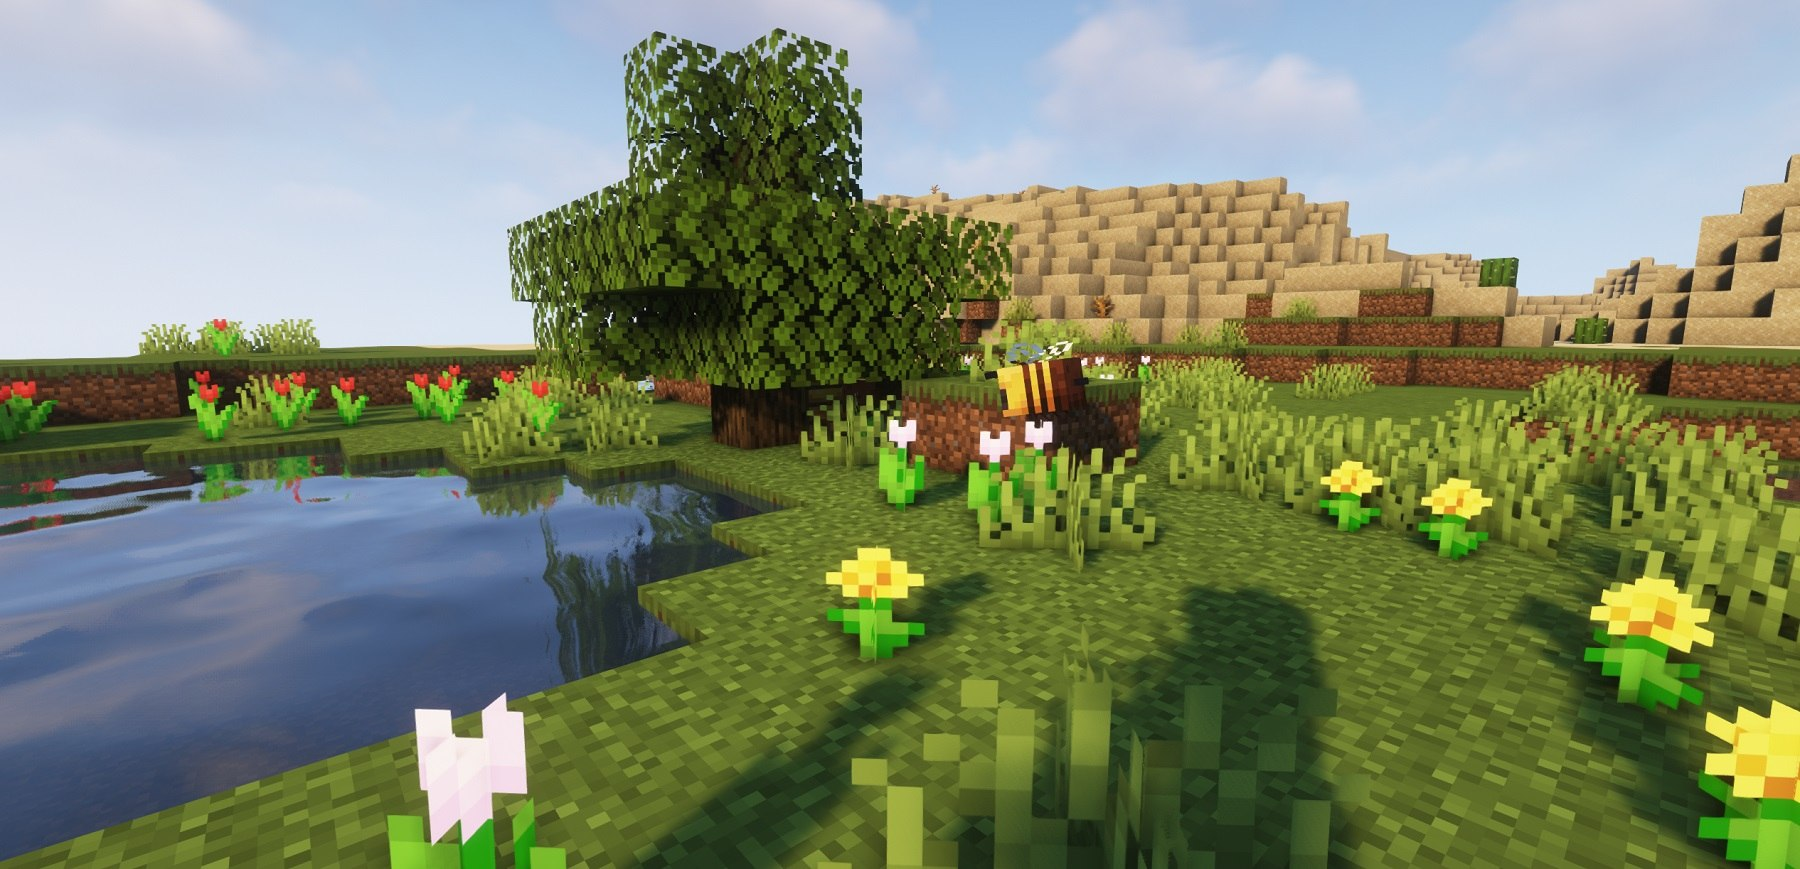 Complementary Shaders Minecraft shadery BSL edit 3